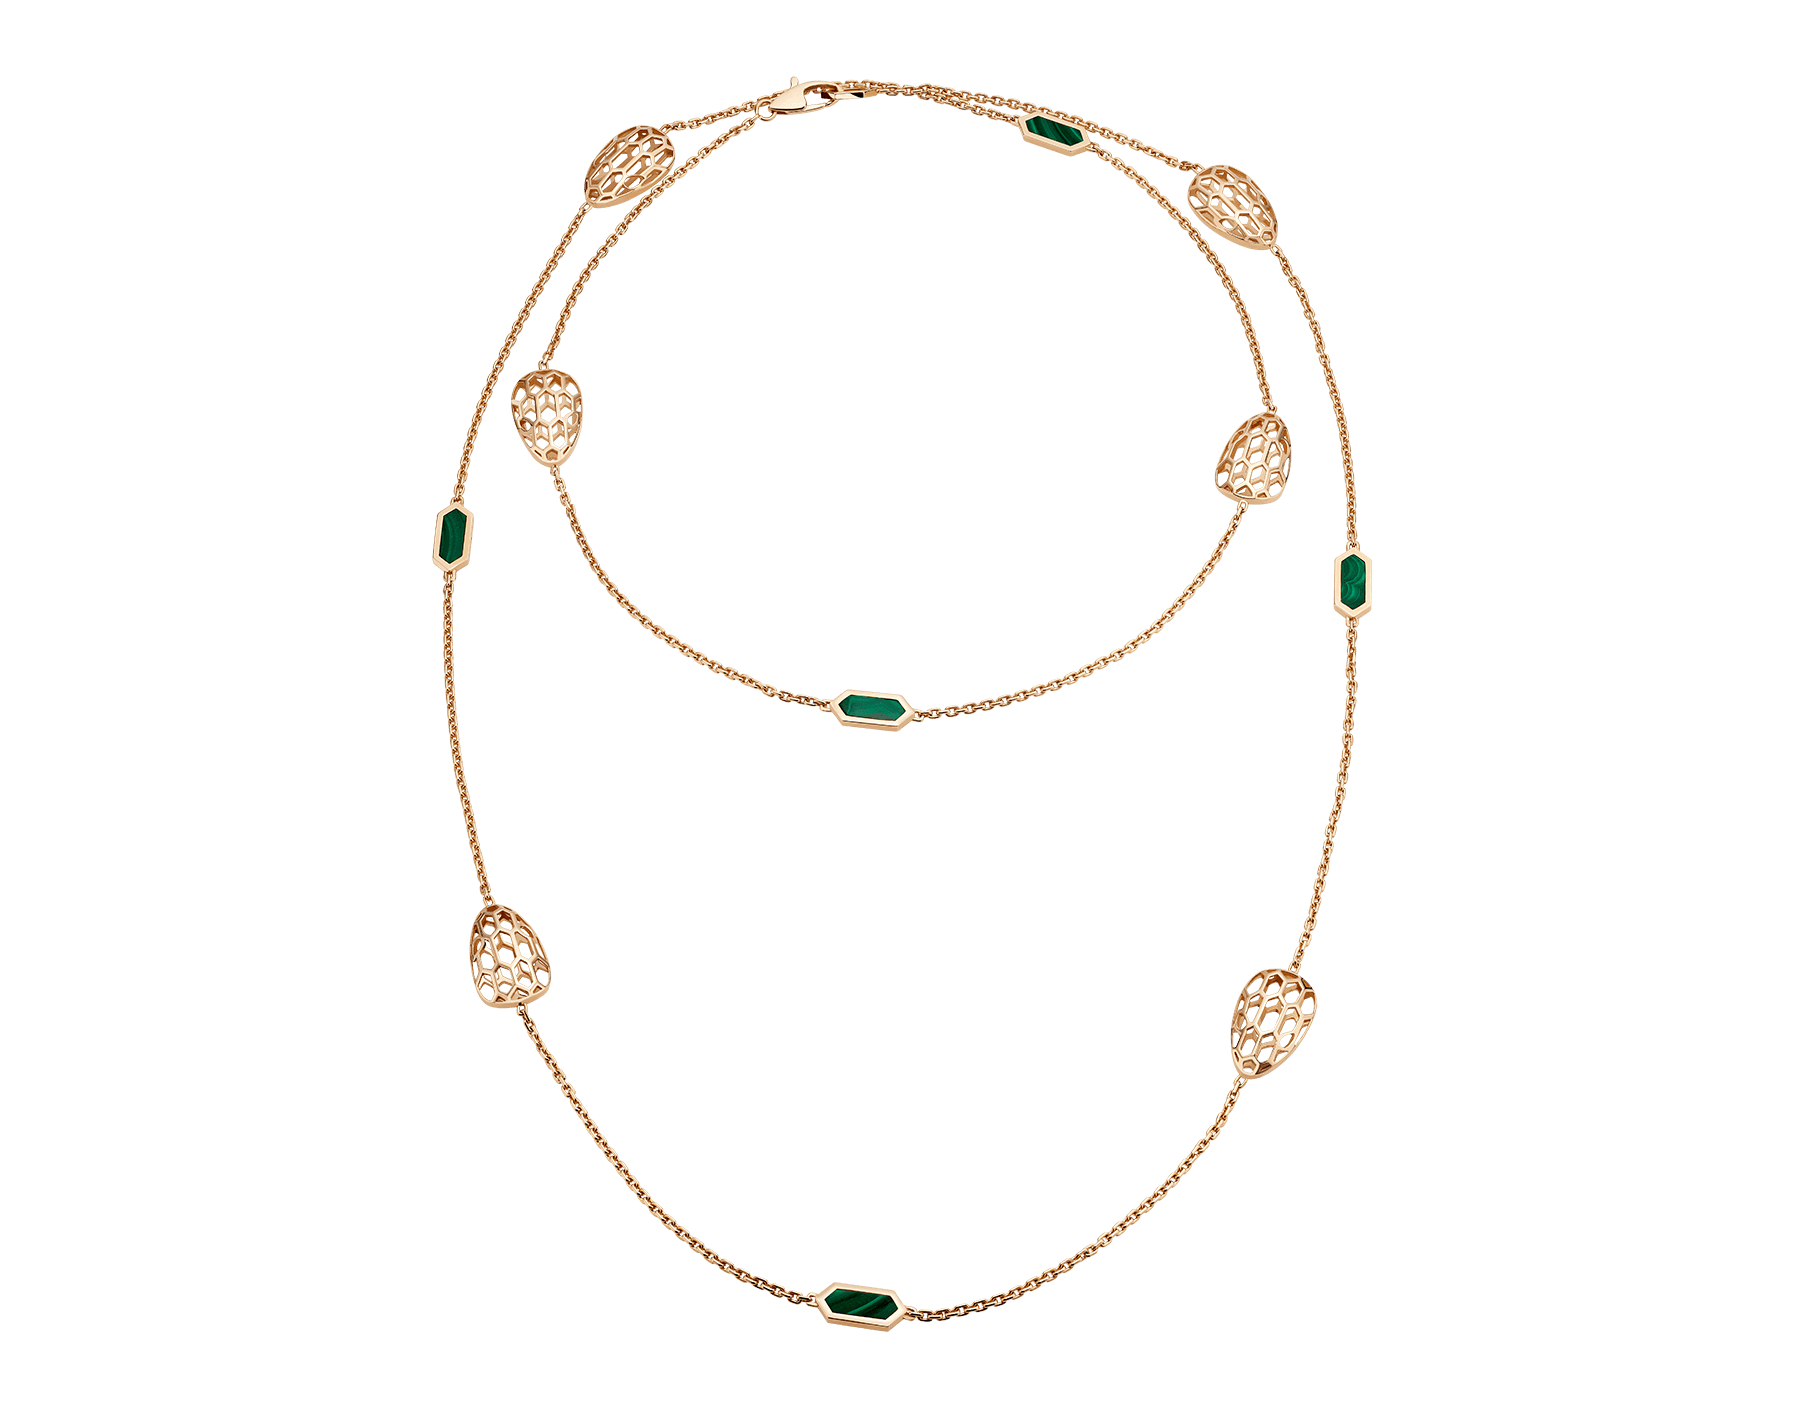 Serpenti sautoir in 18 kt rose gold set with malachite elements. 352677 image 1